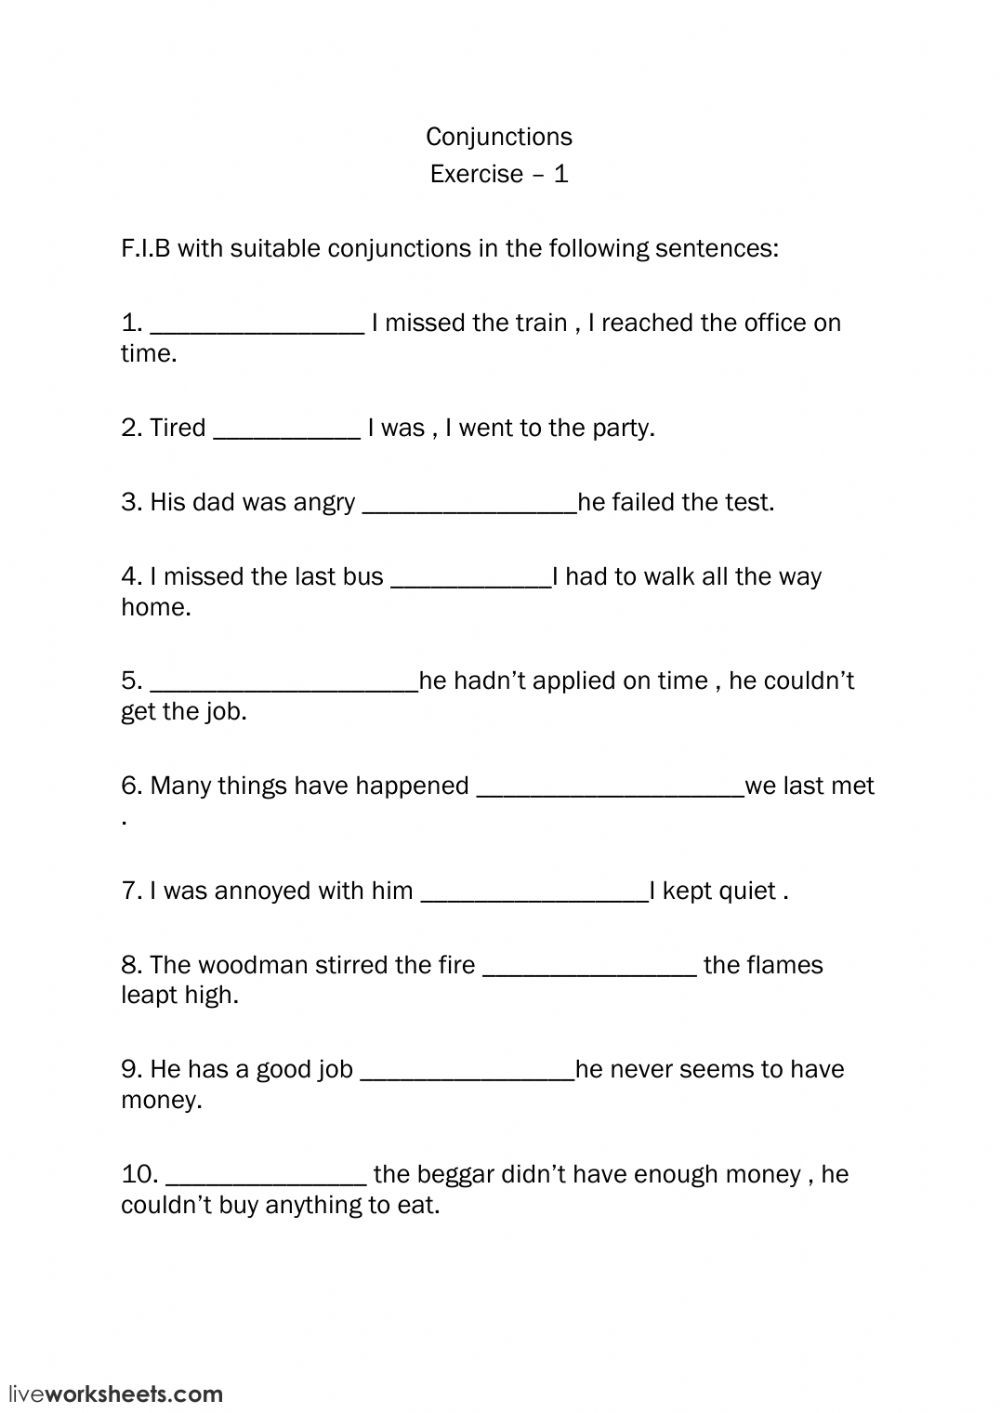 Conjunction Worksheets 6th Grade Conjunctions Interactive Worksheet